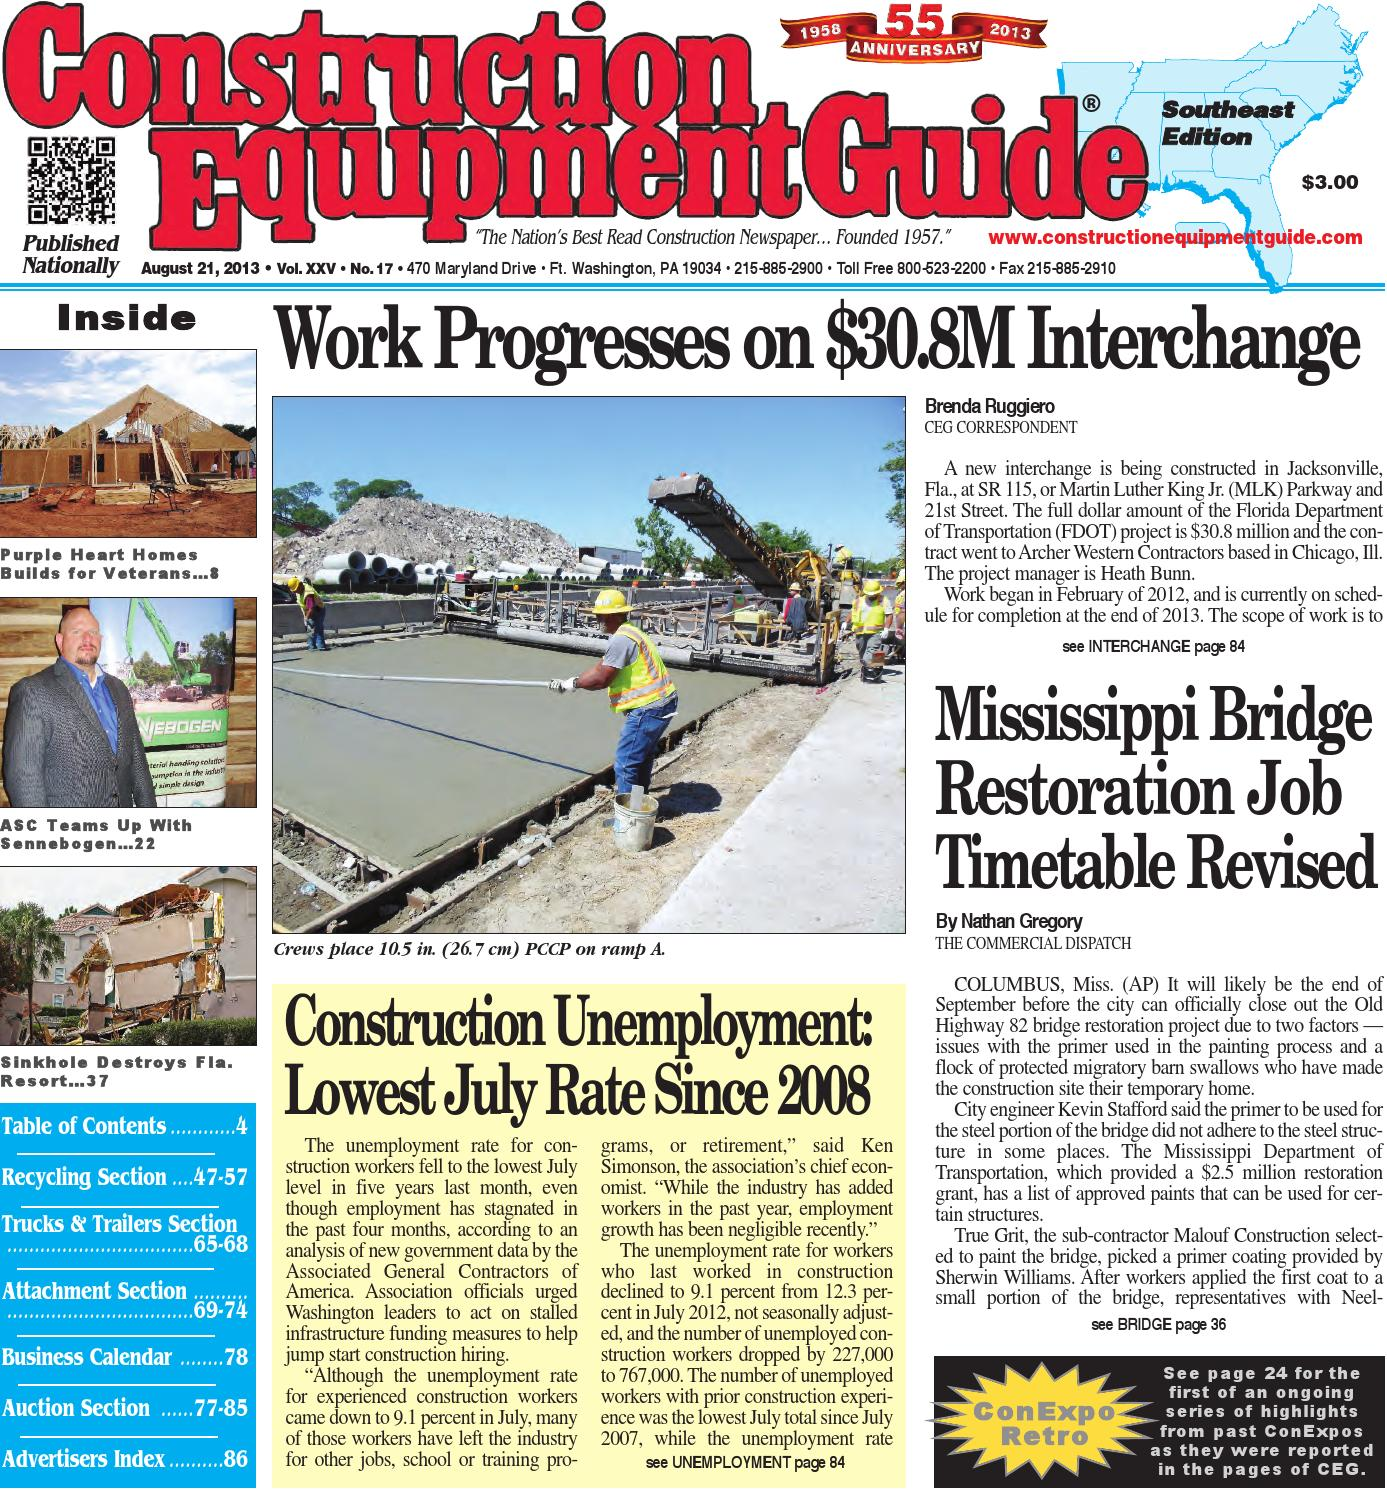 Southeast 17 2013 by Construction Equipment Guide - issuu d3d91d3daf